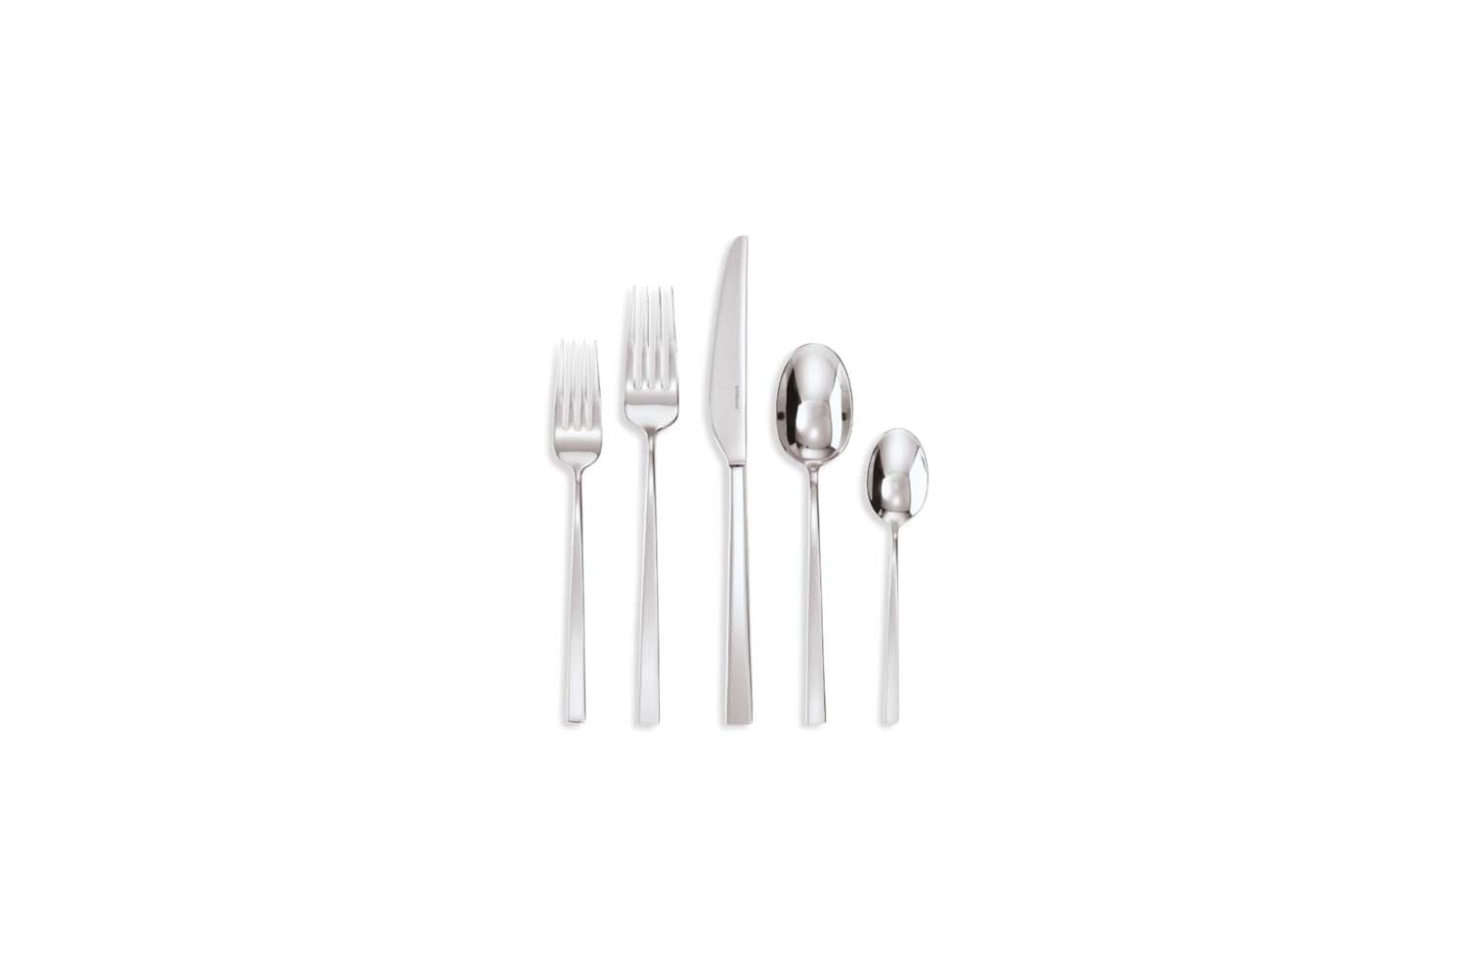 Italian-made Sambonet Linea Q stainless steel flatware is $85 for a five-piece set at Saks Fifth Avenue.